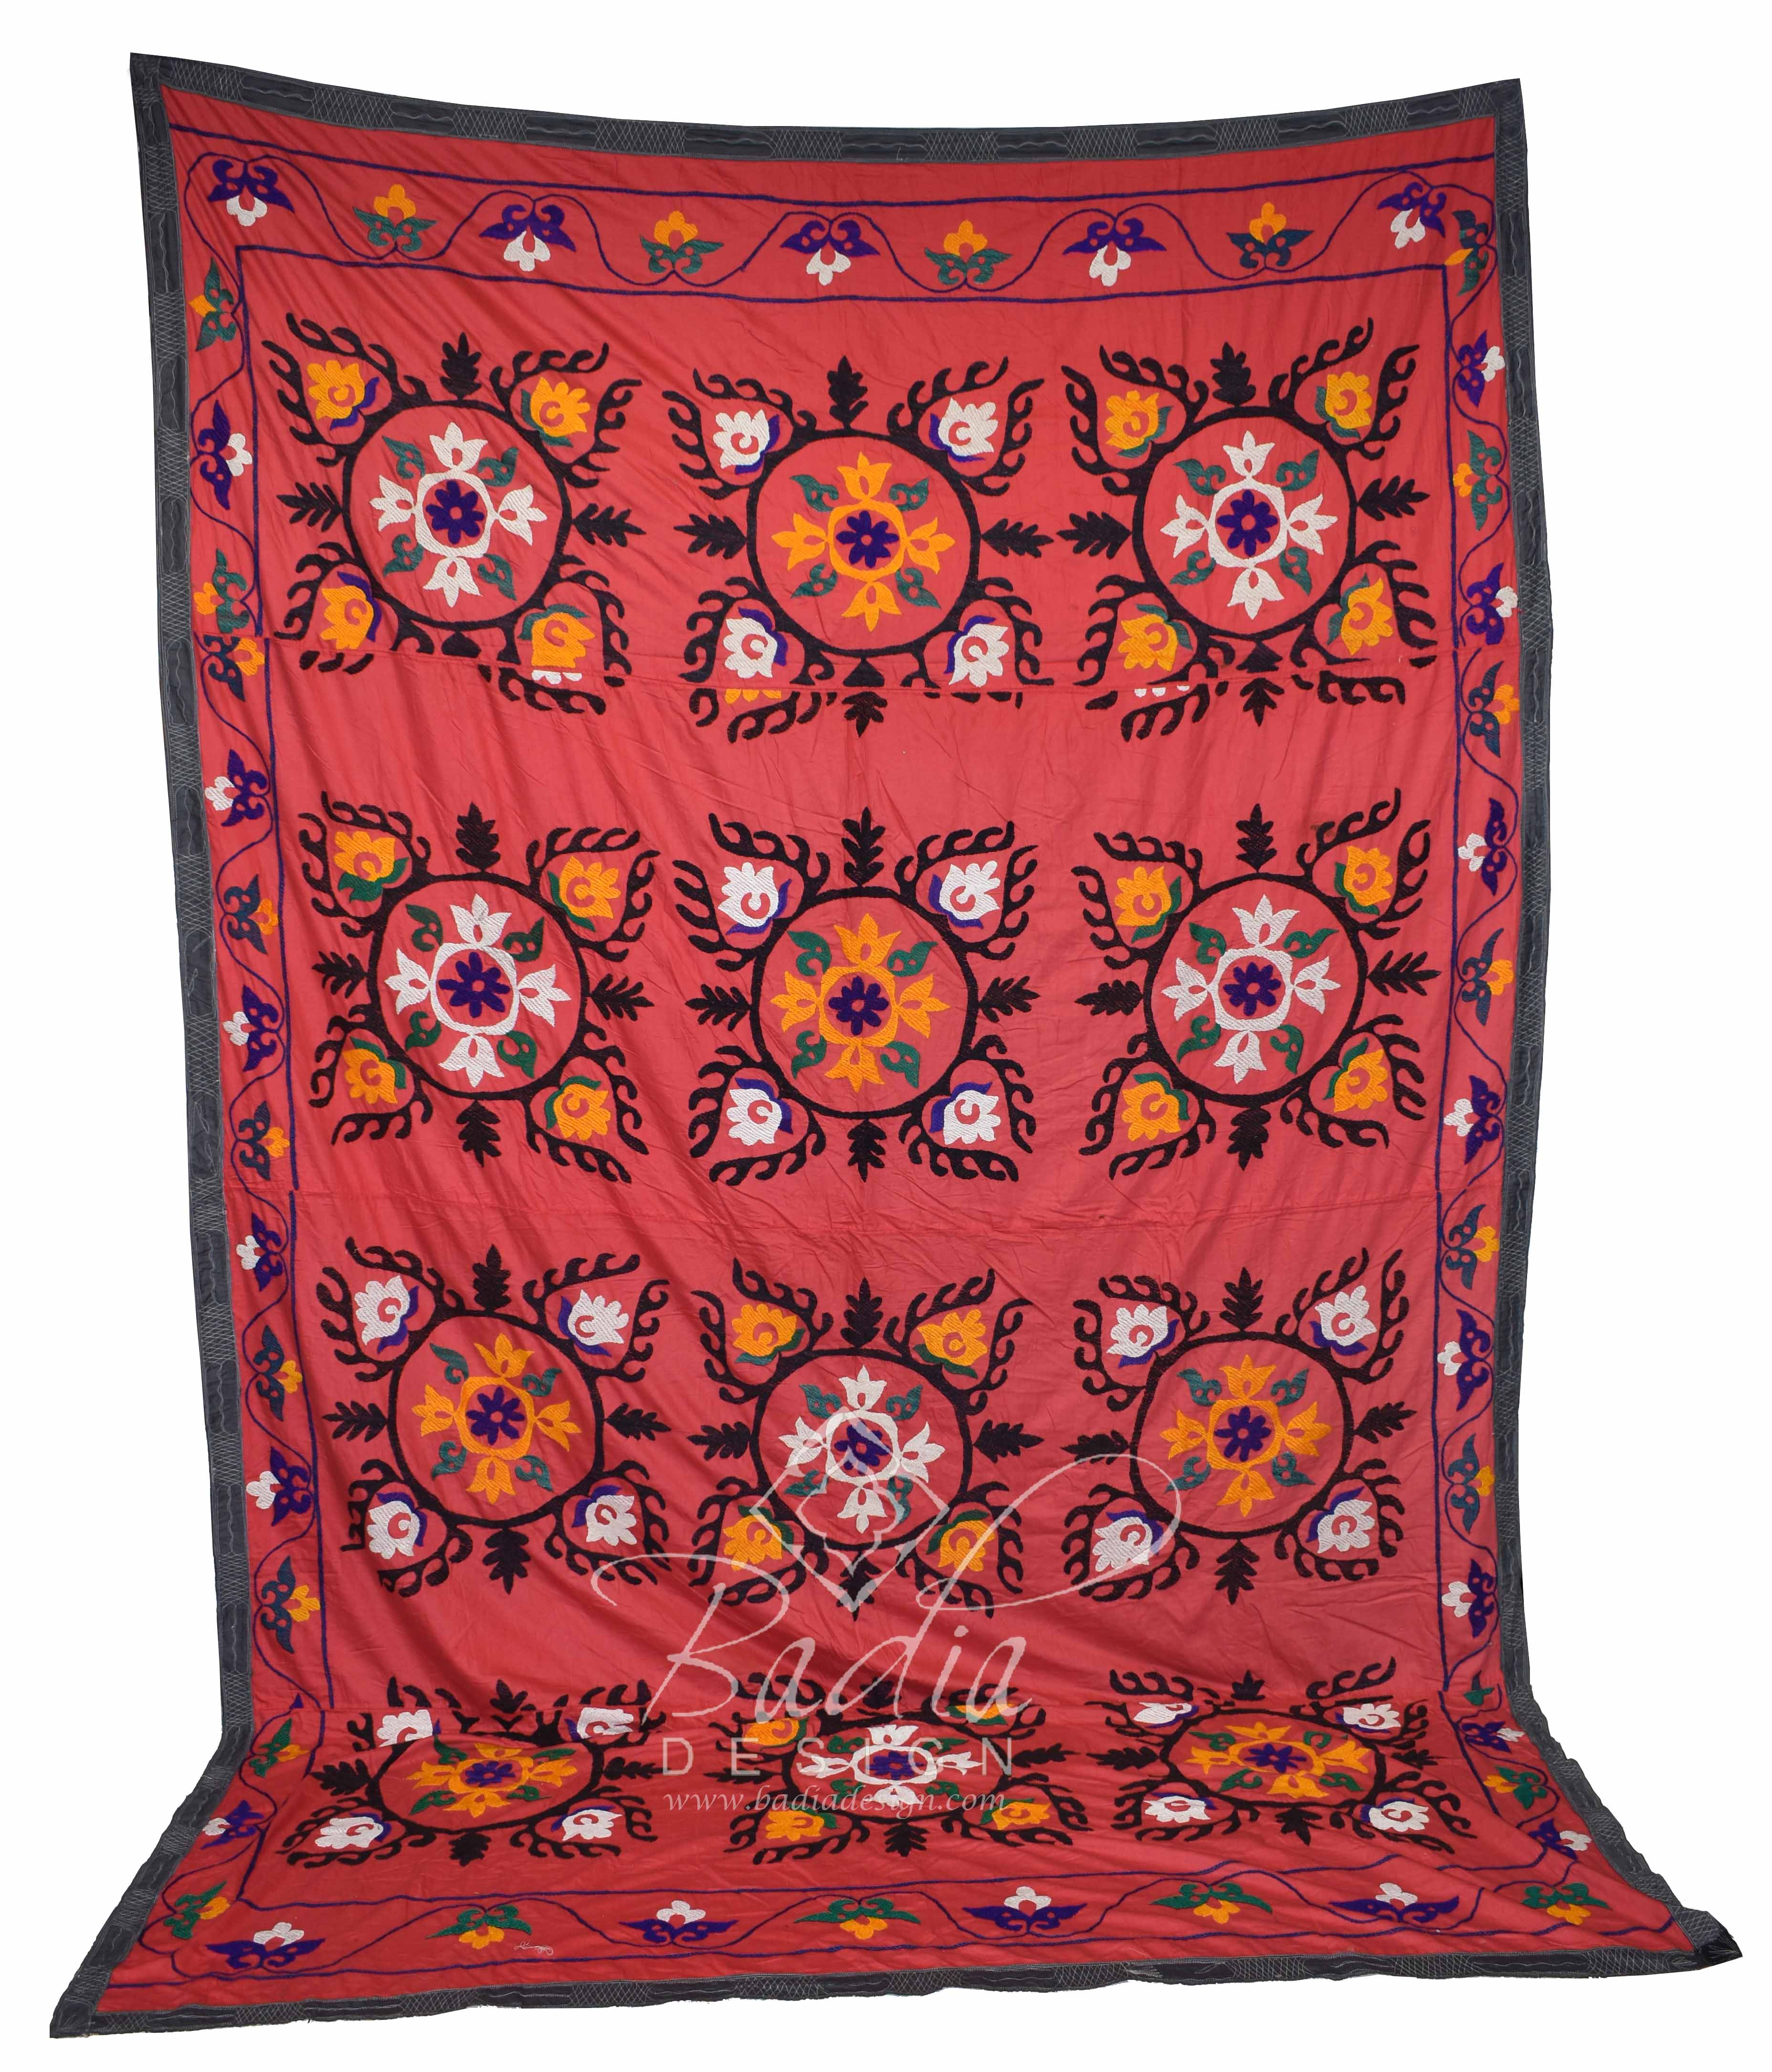 embroidery-textile-suzani-quilt-suzqlt012.jpg